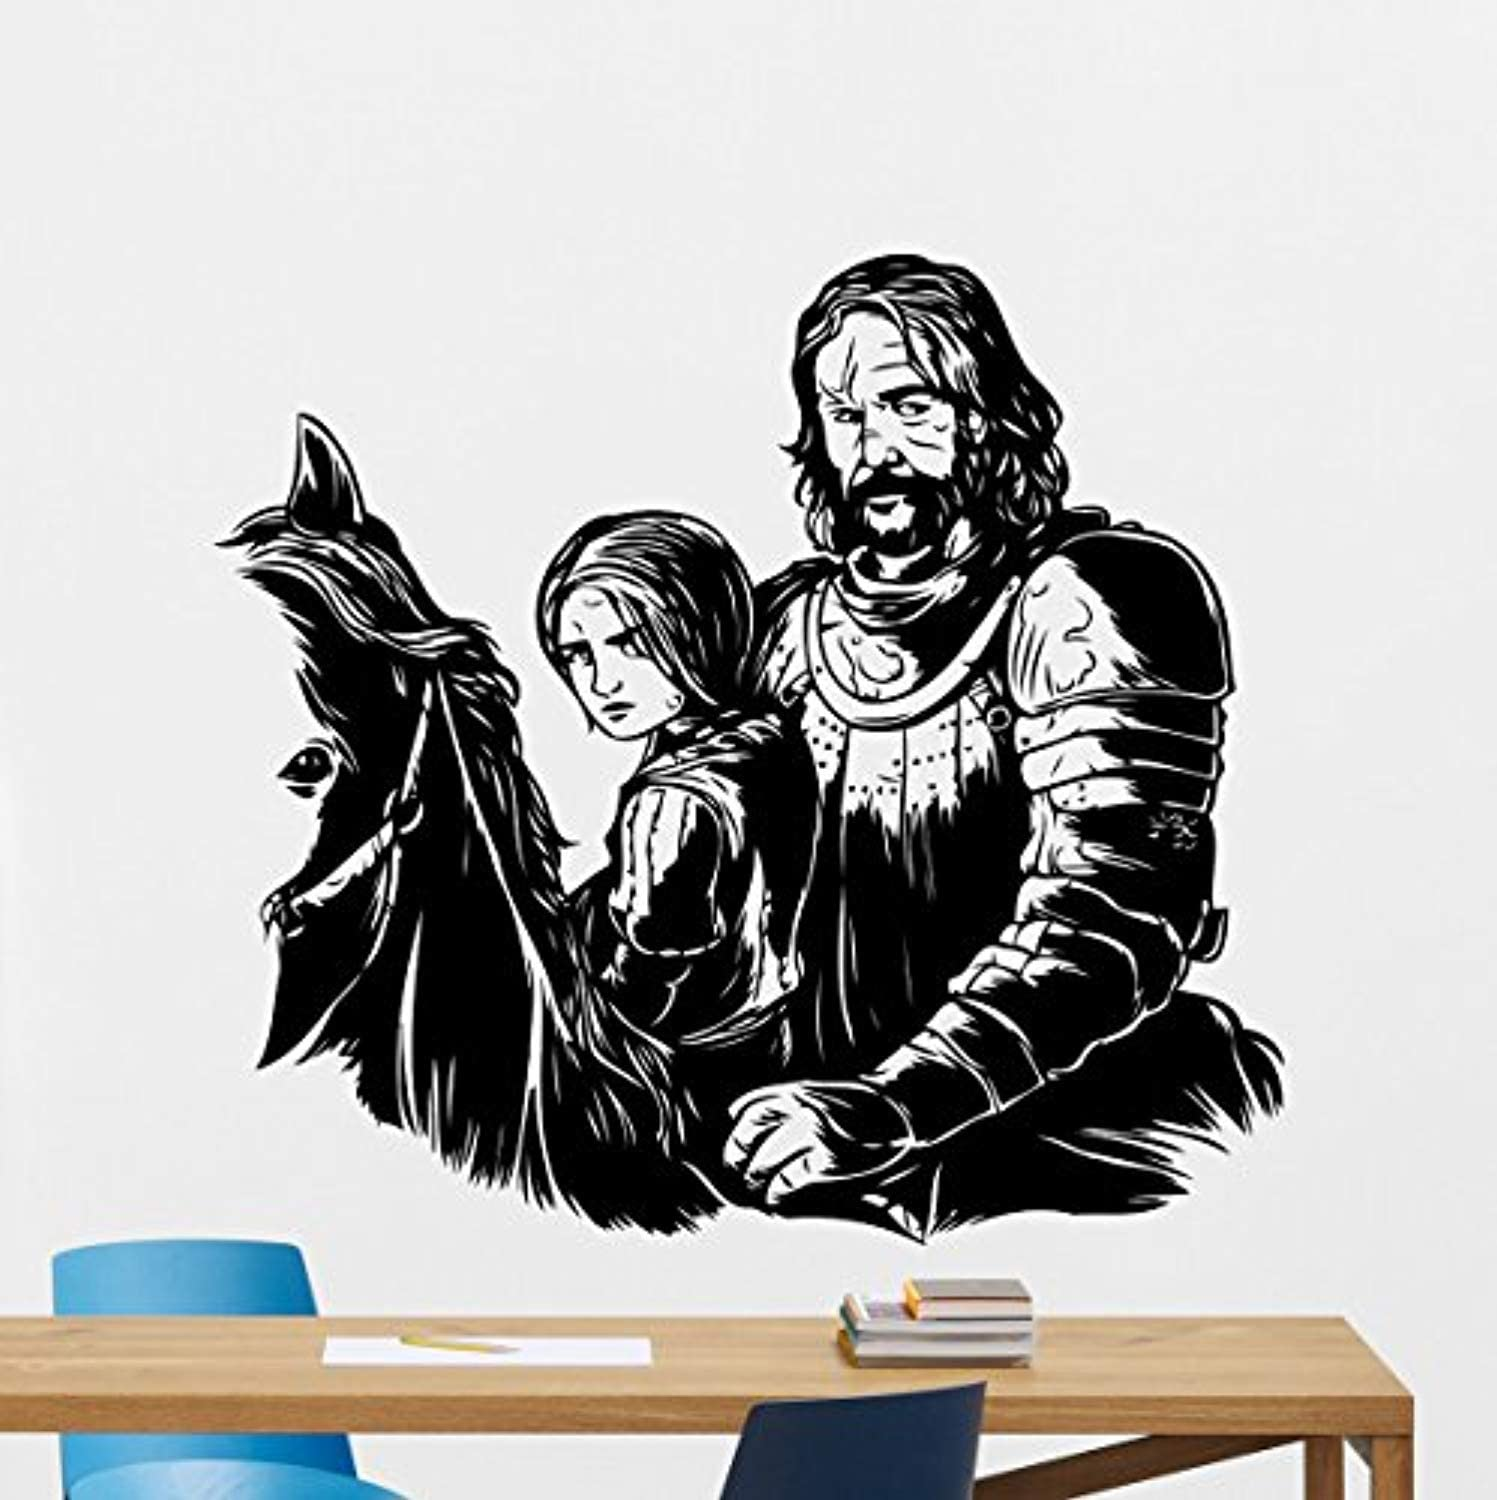 Amazon Com The Hound Arya Stark Wall Decal Sandor Clegane Game Of